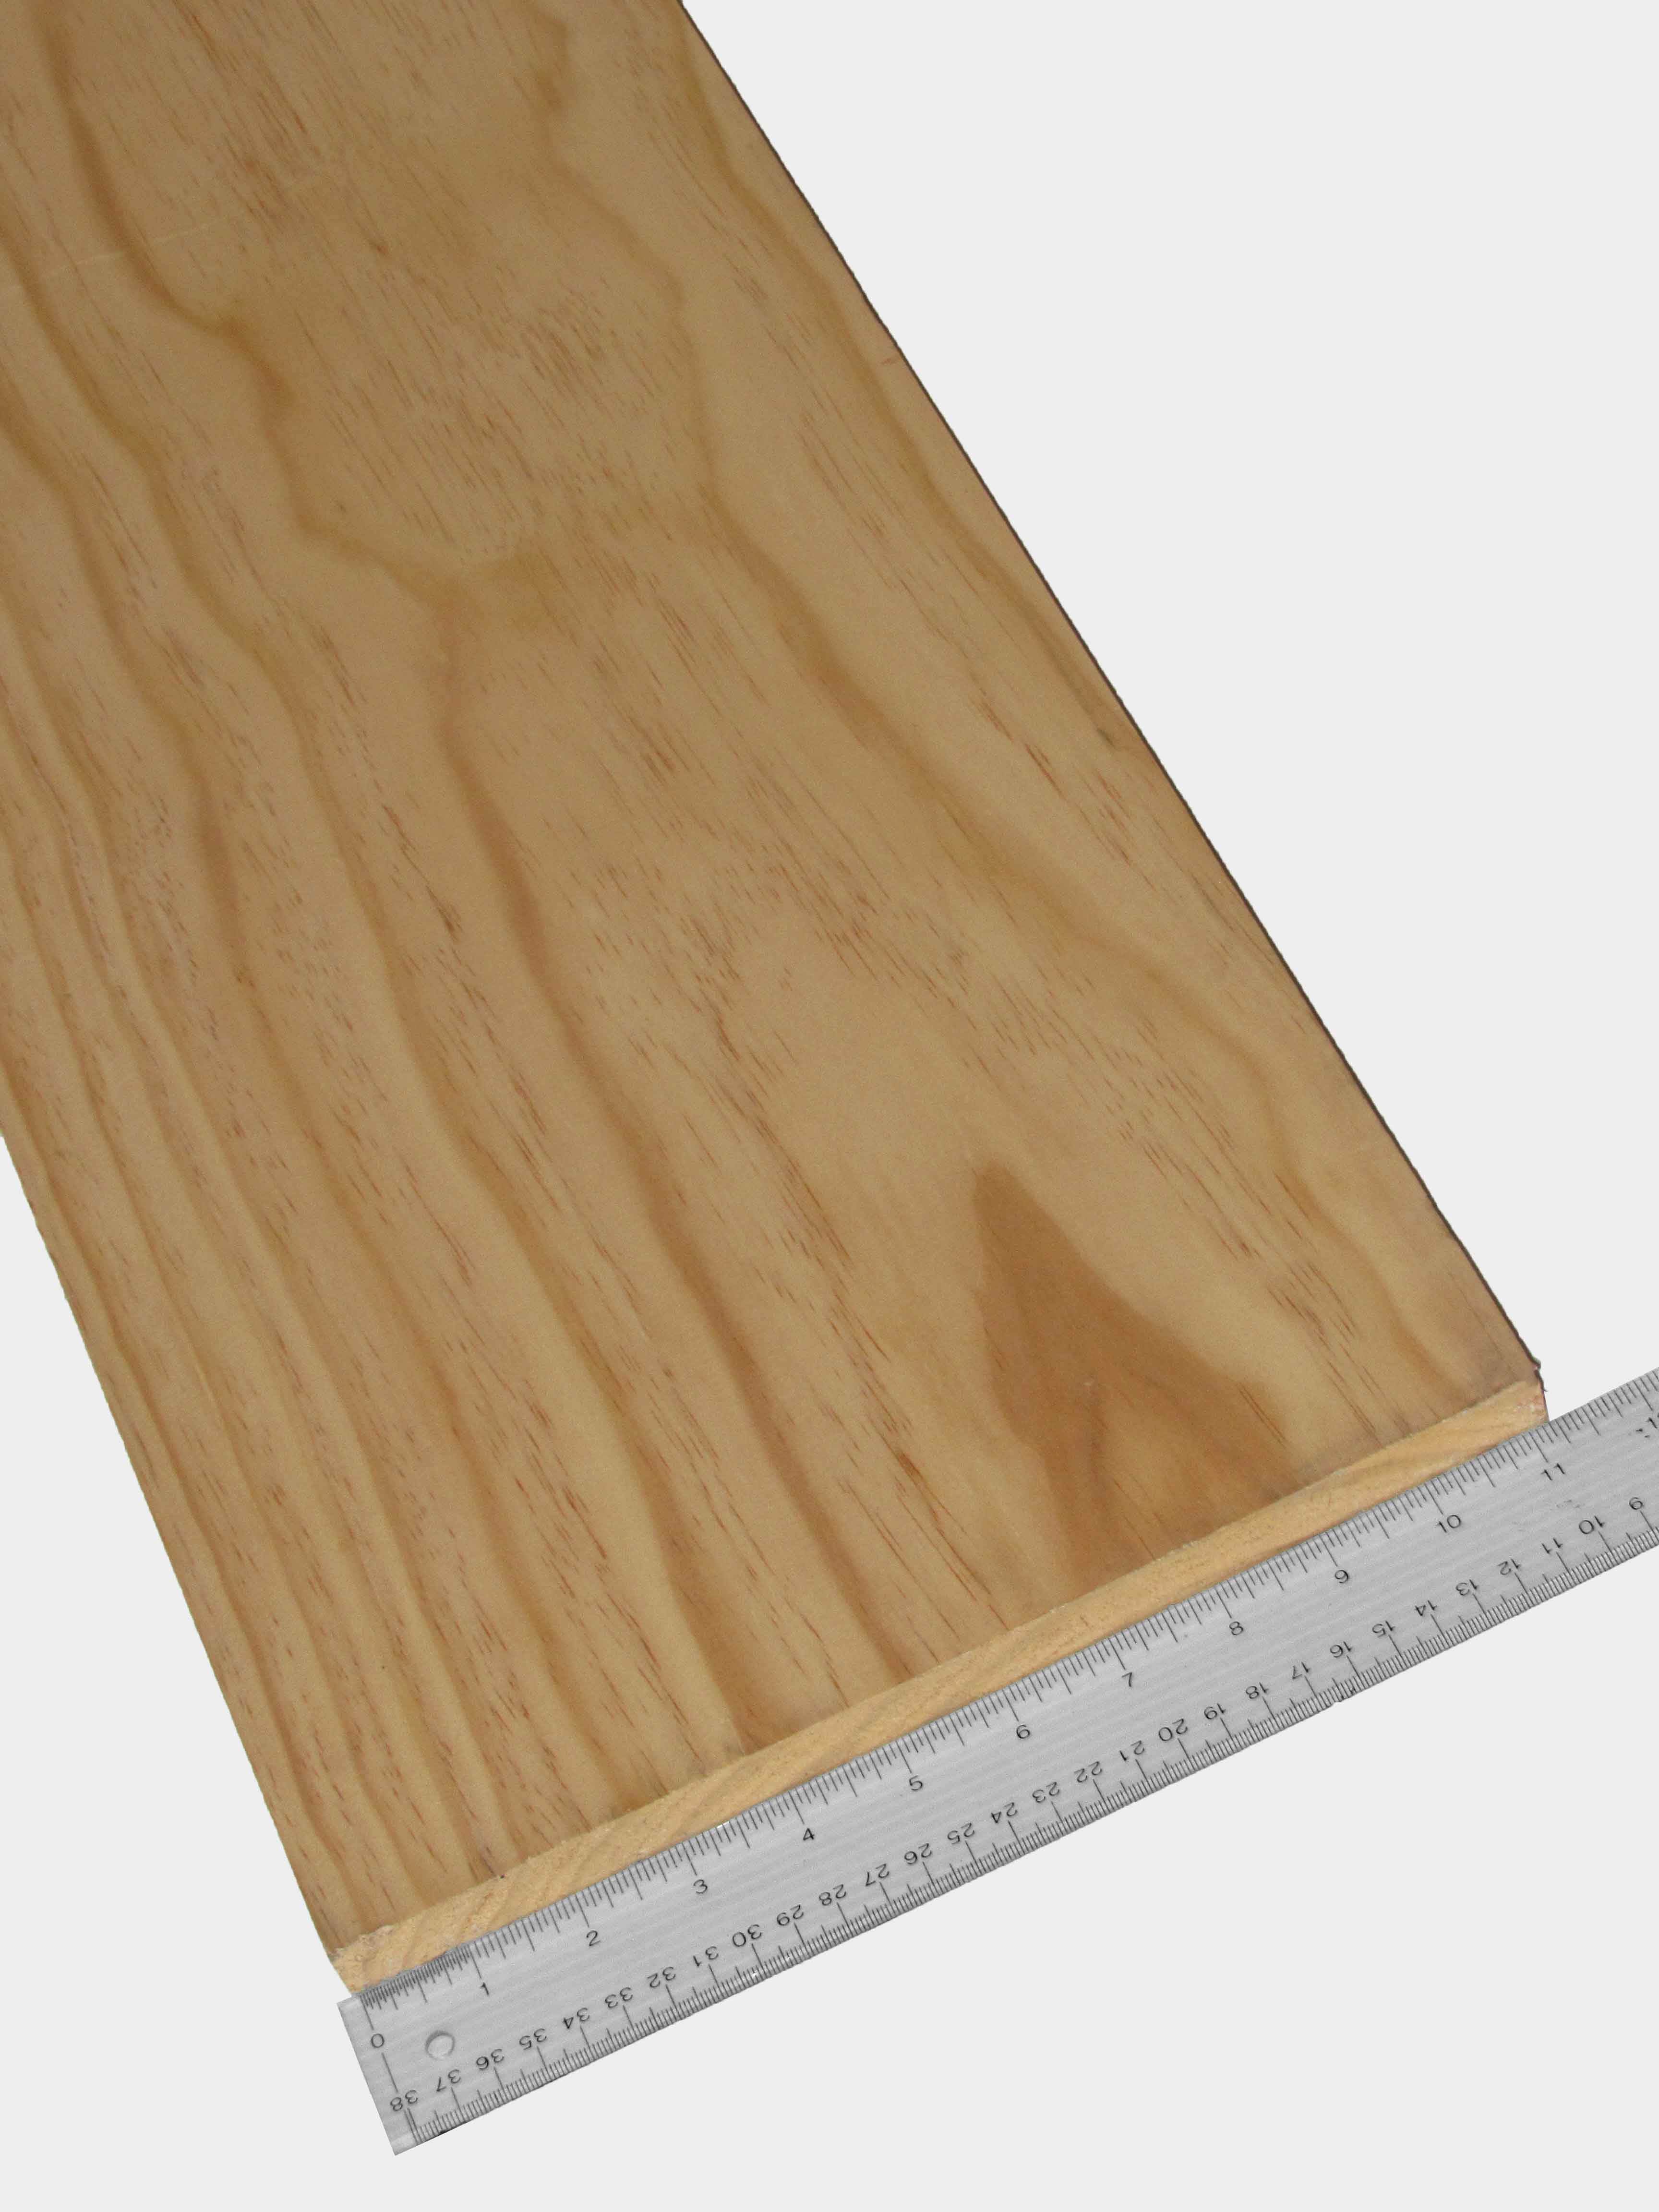 1x12 Clear White Pine Lumber, S4S - Capitol City Lumber